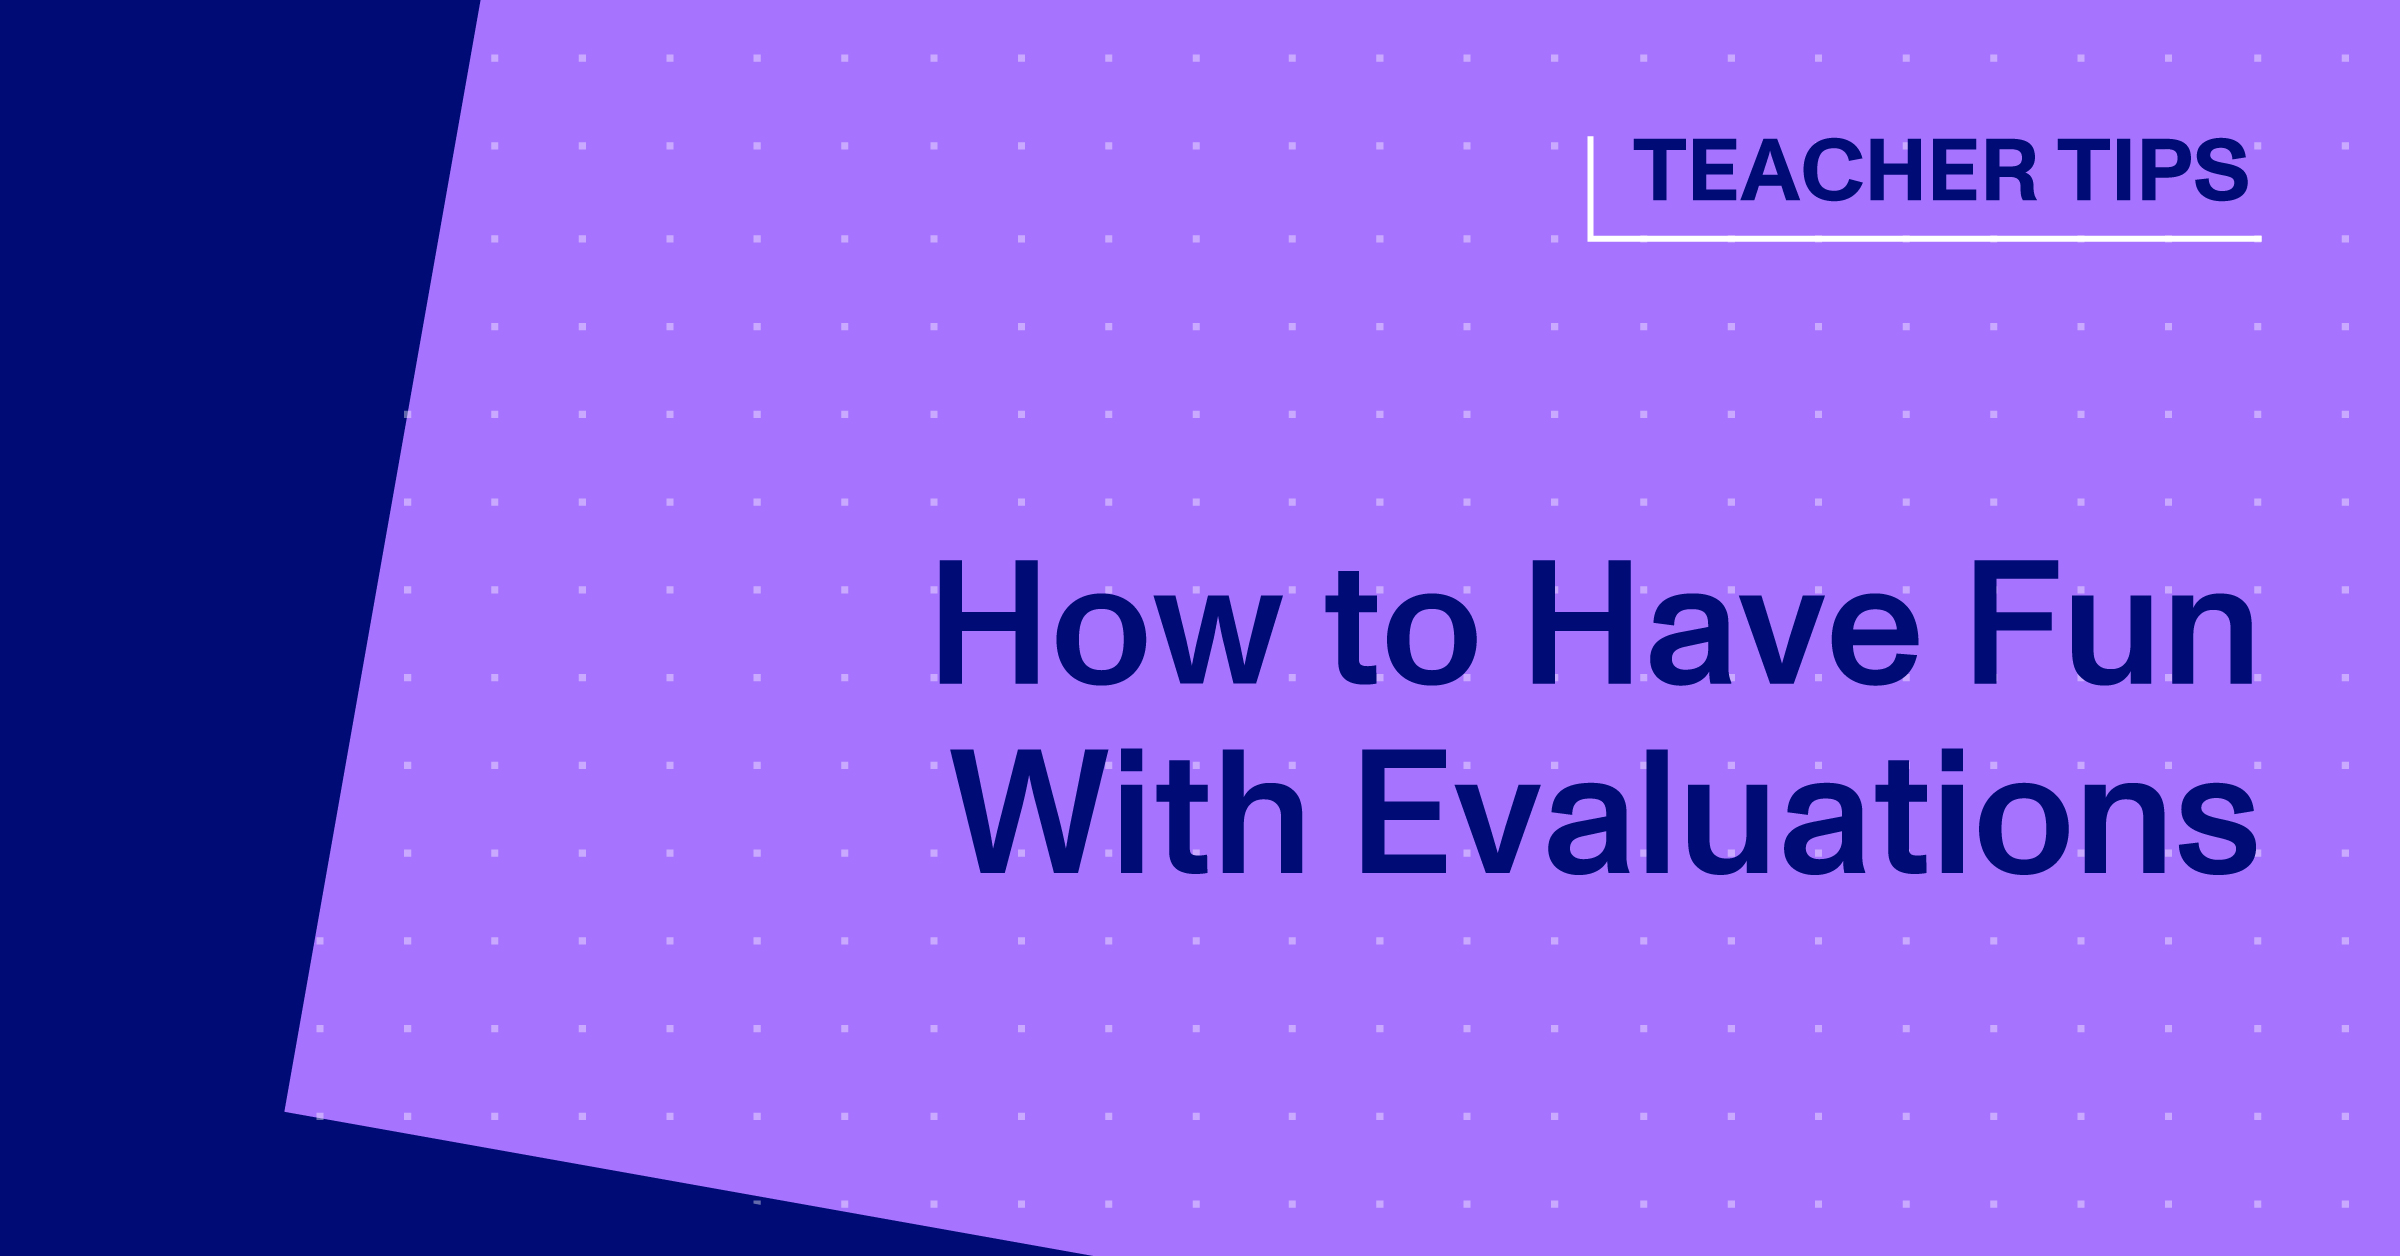 How To Have Fun With Evaluations